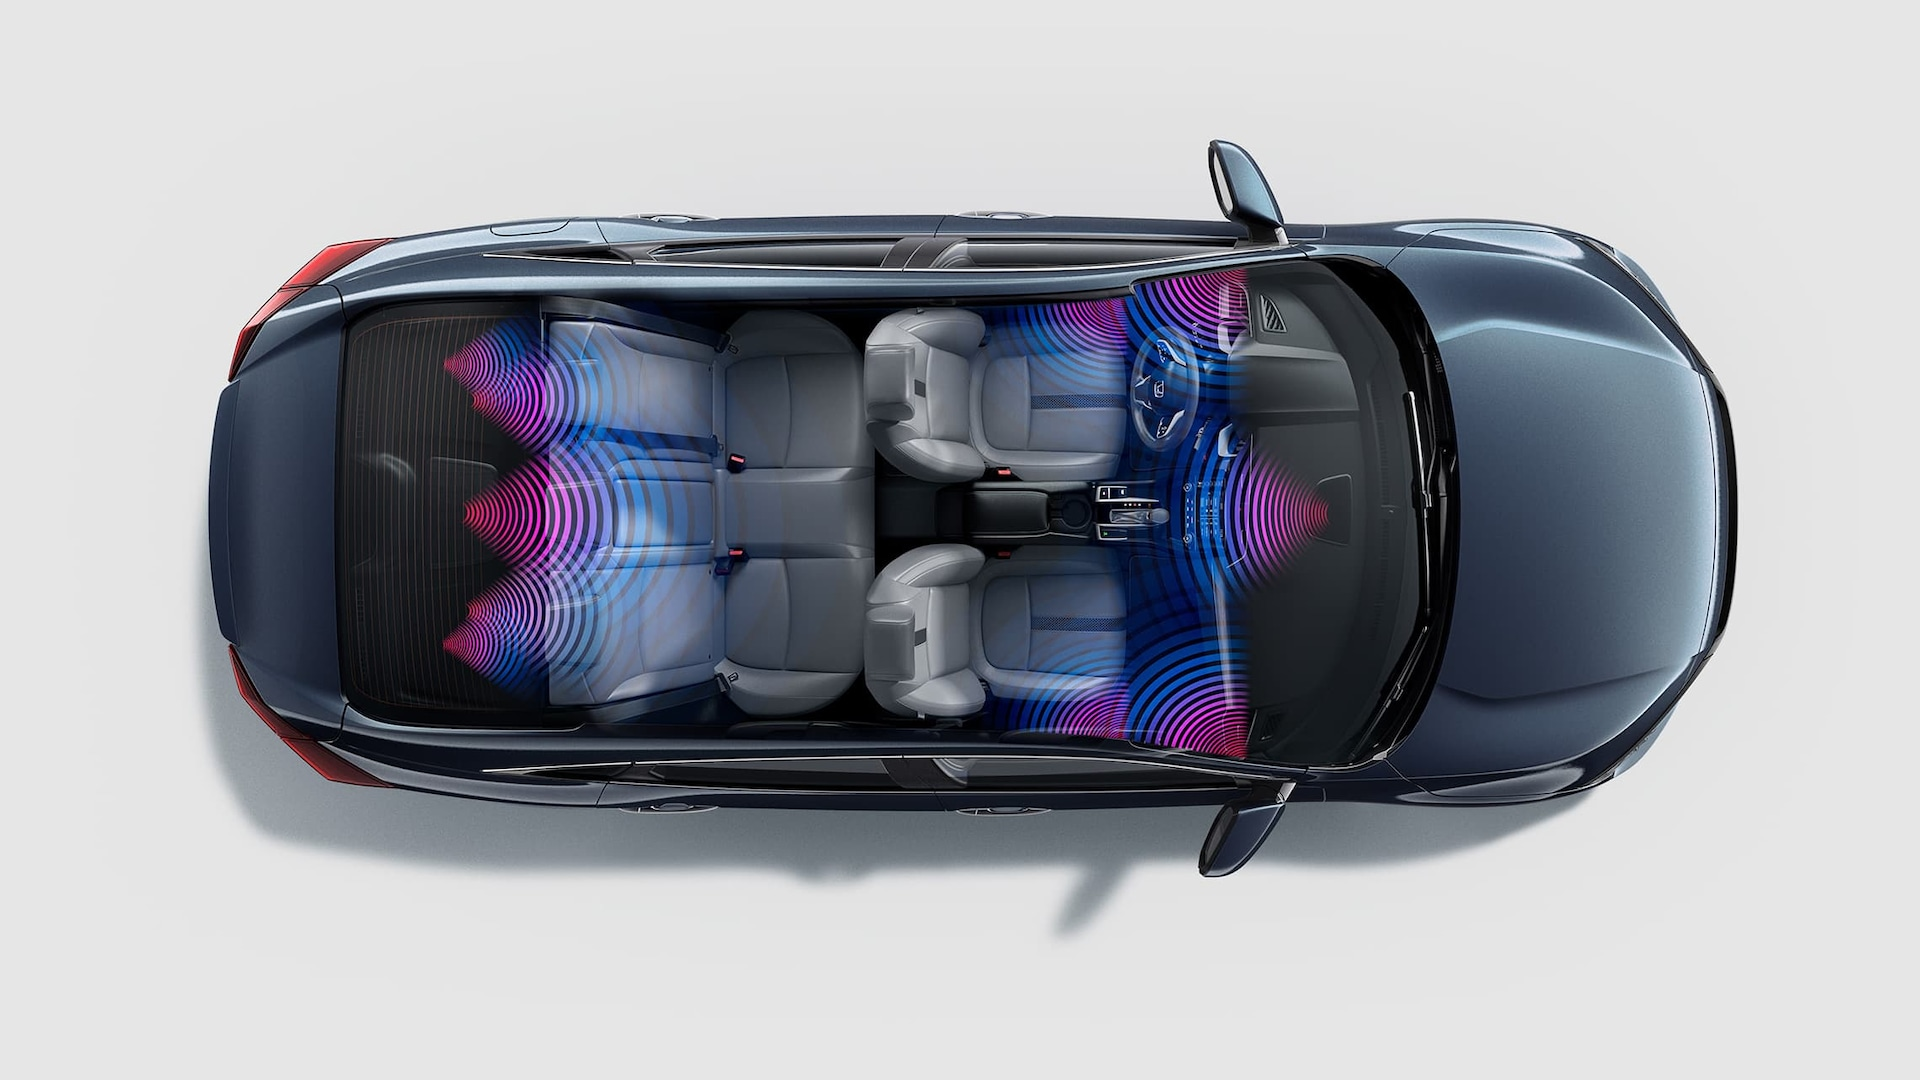 Overhead view of the 2020 Honda Civic Touring Sedan in Cosmic Blue Metallic with illustrated audio sound waves.